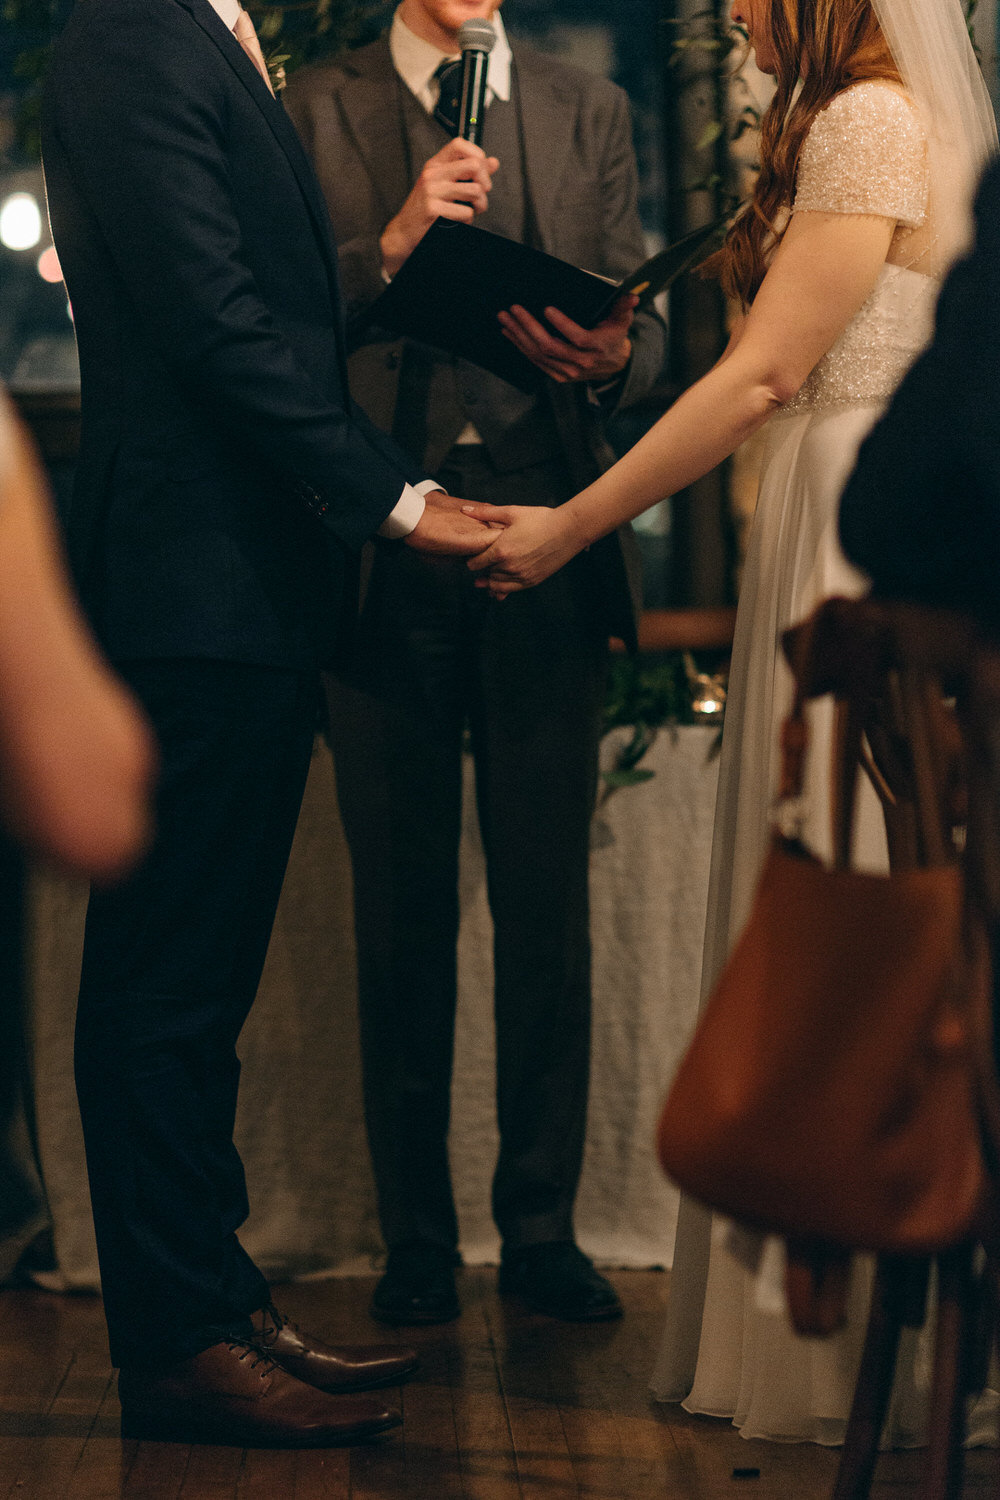 burroughes-building-wedding-toronto-christine-lim-photography-blush-and-bowties-089